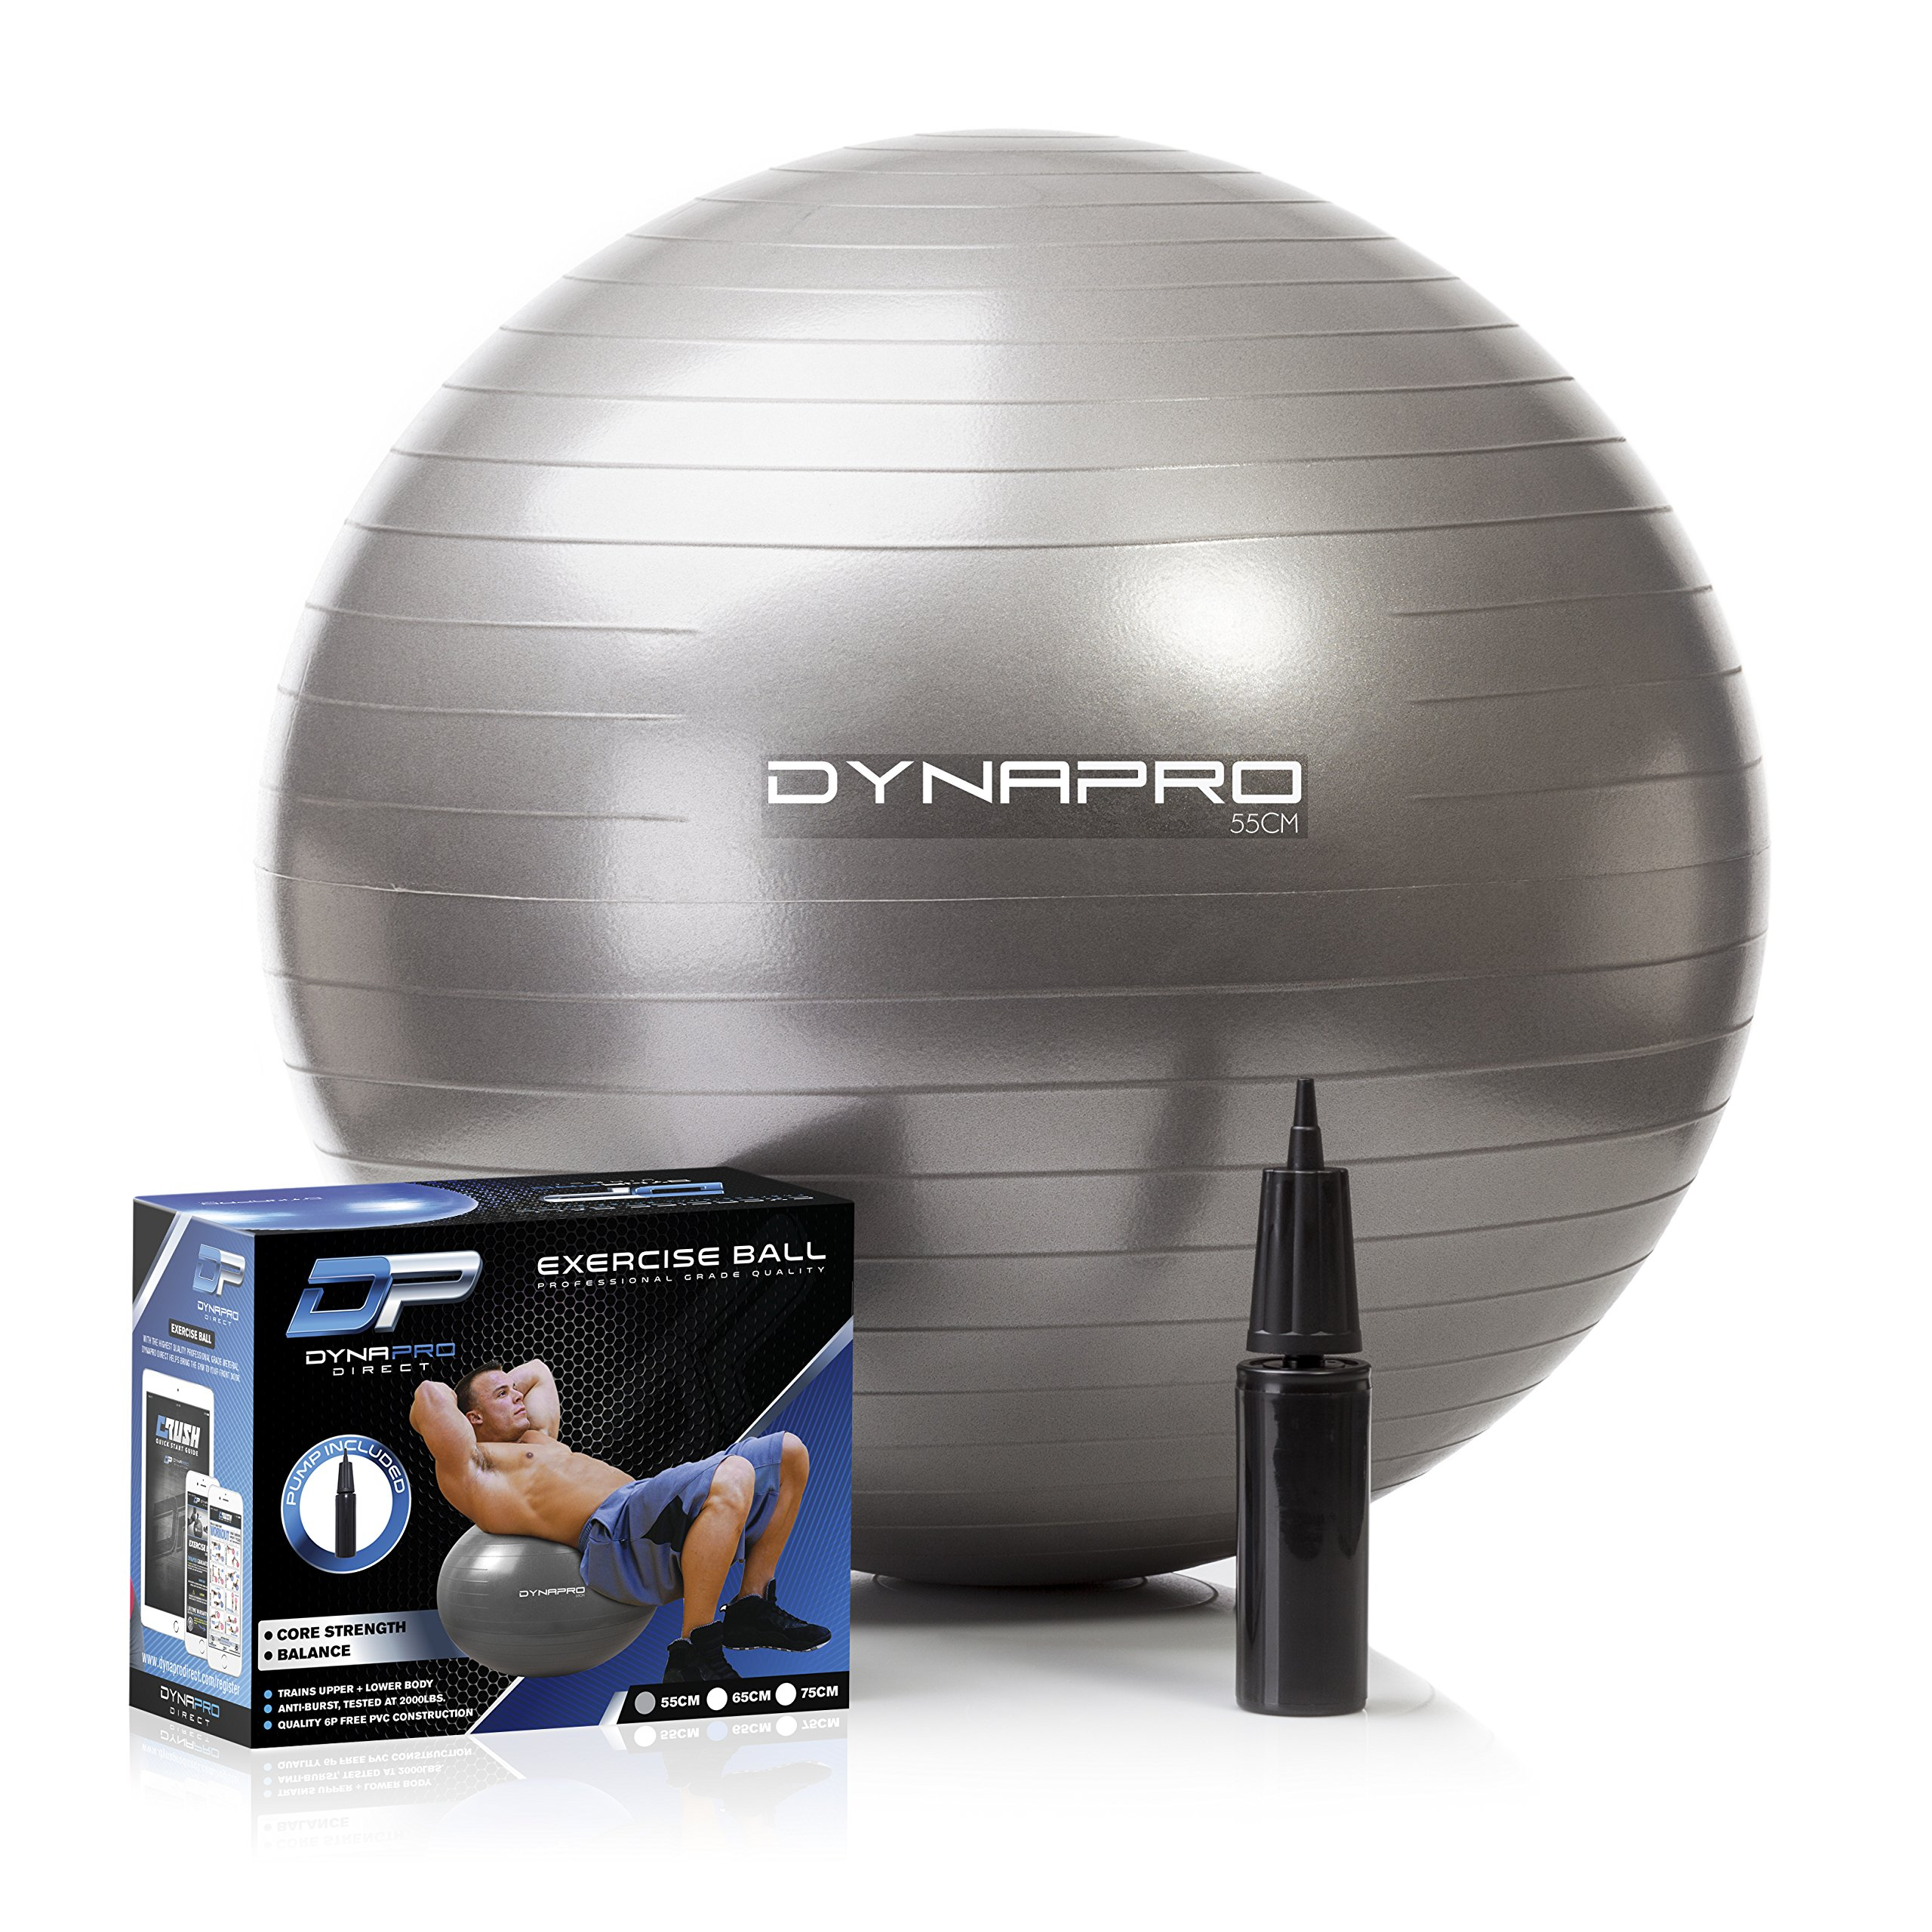 DYNAPRO Exercise Ball - 2,000 lbs Stability Ball - Professional Grade – Anti Burst Exercise Equipment for Home, Balance, Gym, Core Strength, Yoga, Fitness, Desk Chairs (Silver, 55 Centimeters) by DYNAPRO (Image #1)